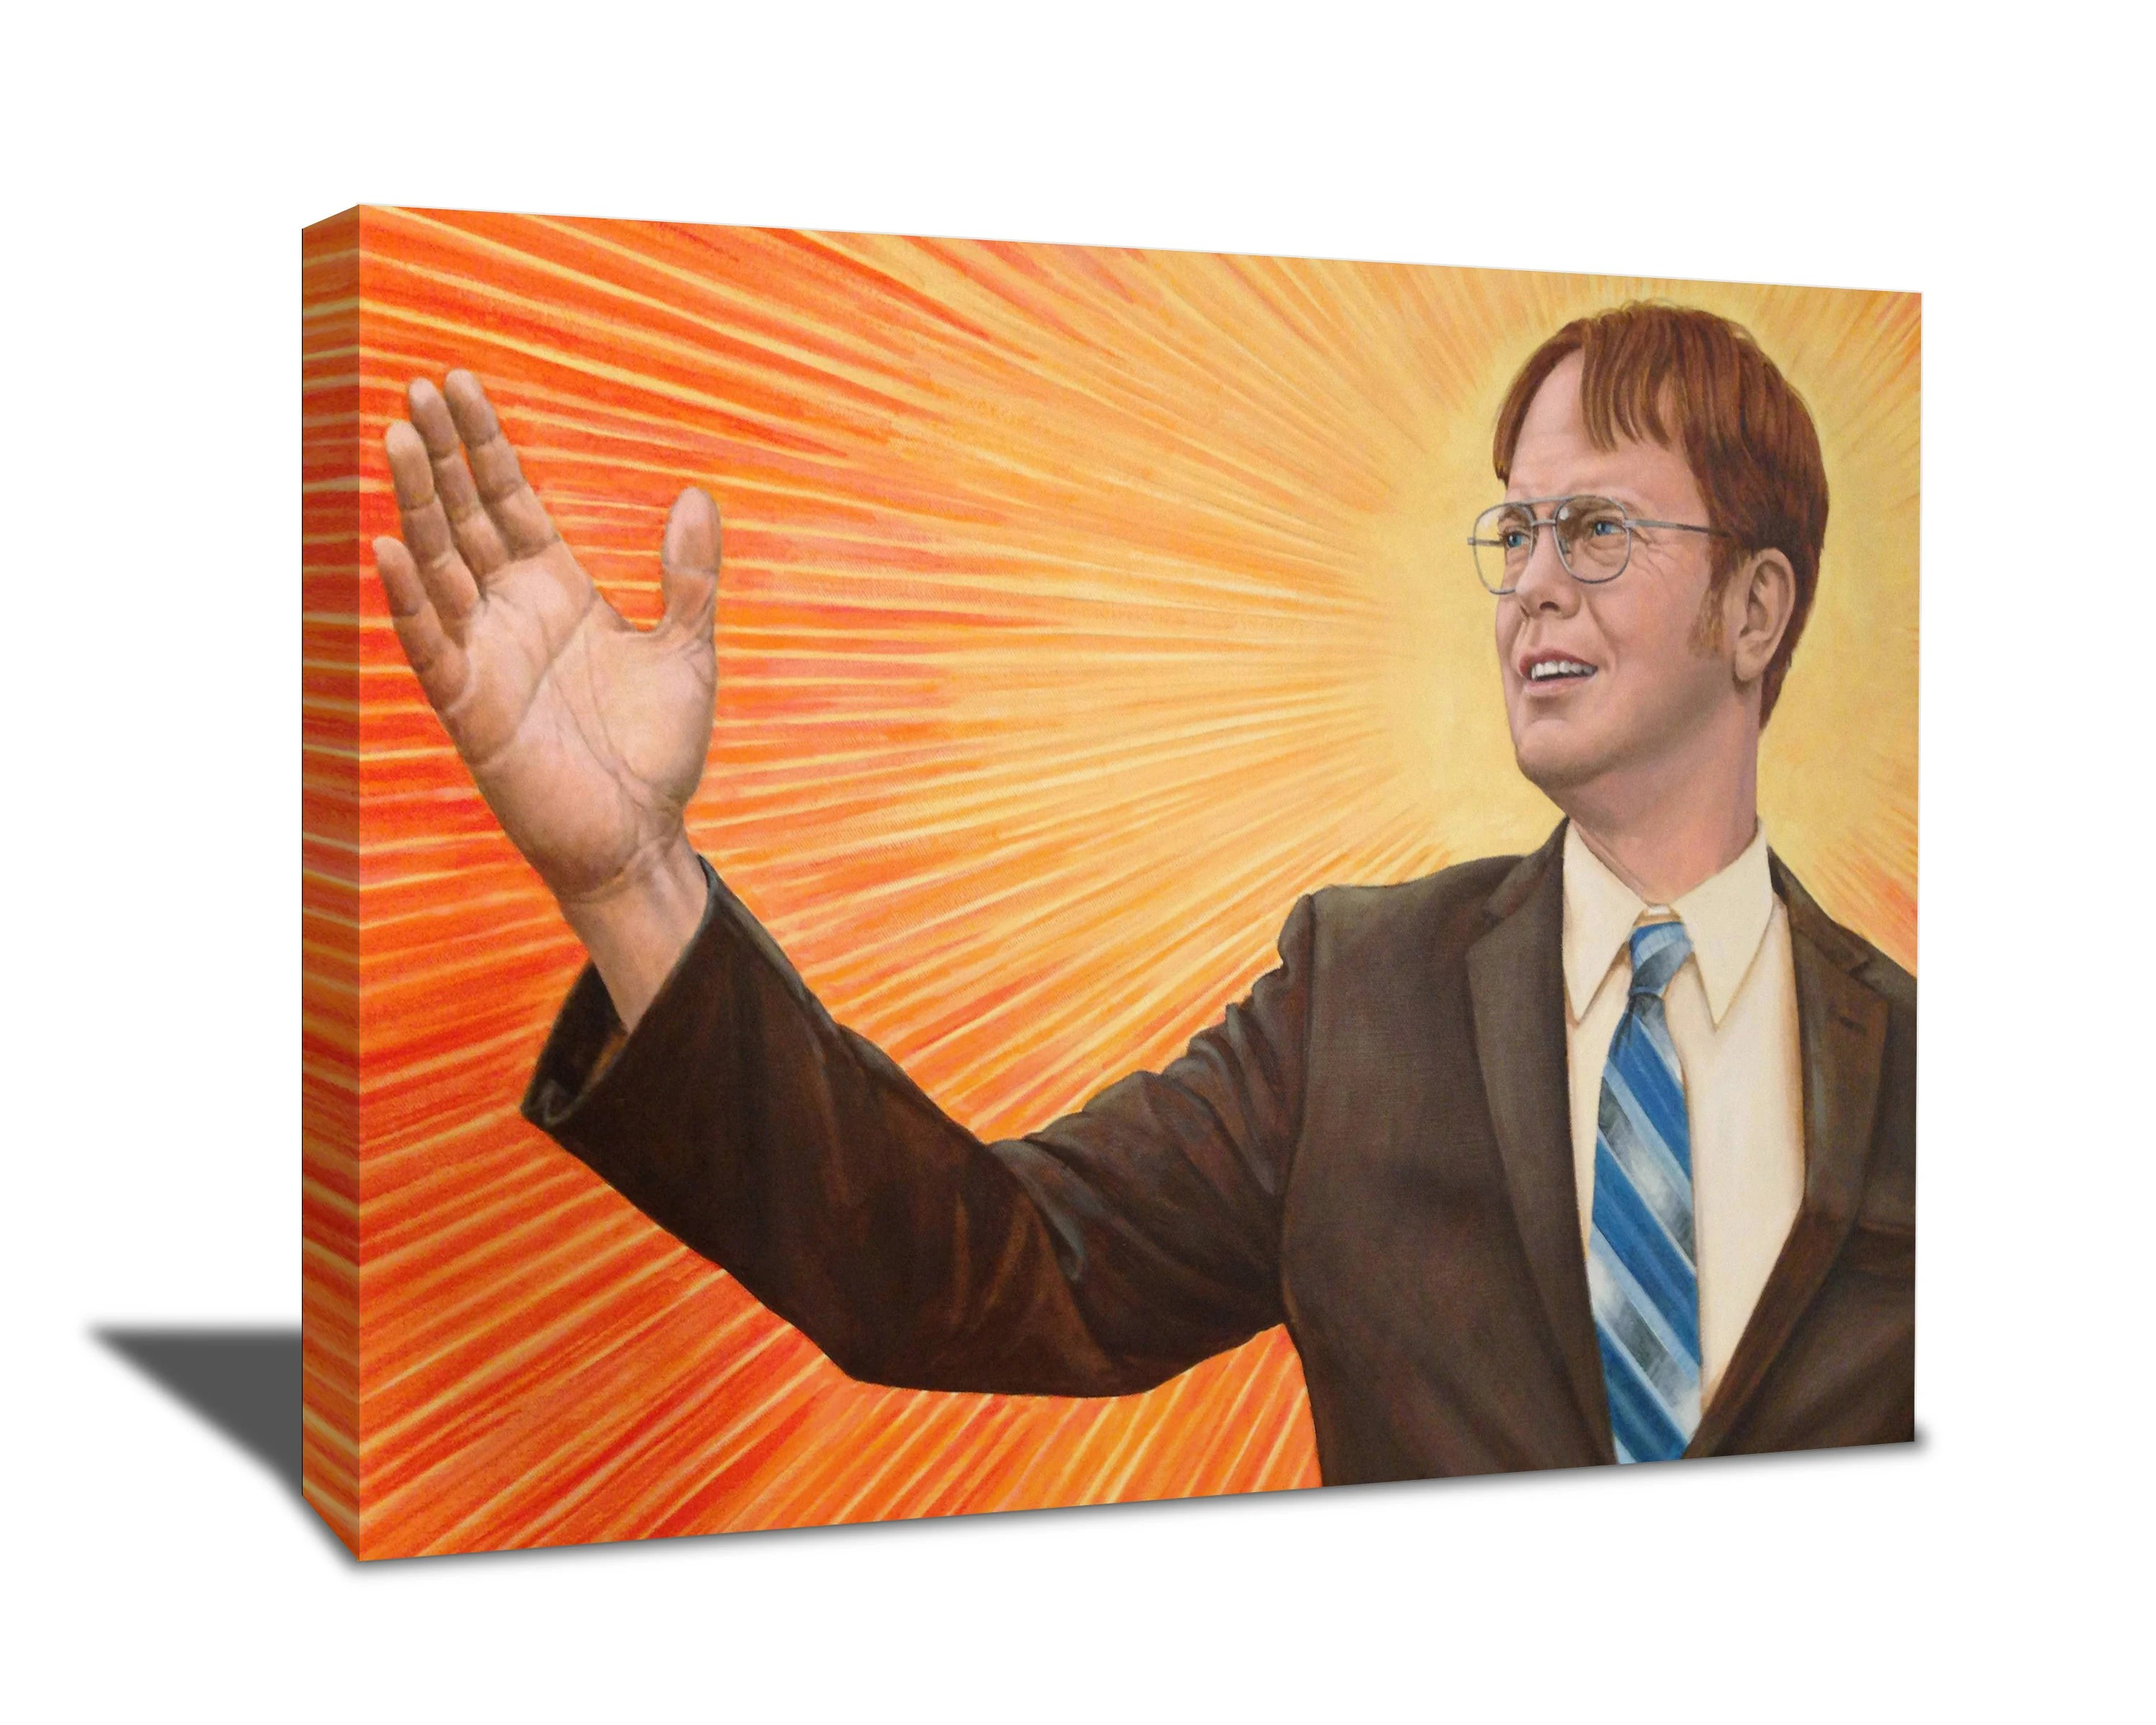 dwight schrute poster etsy